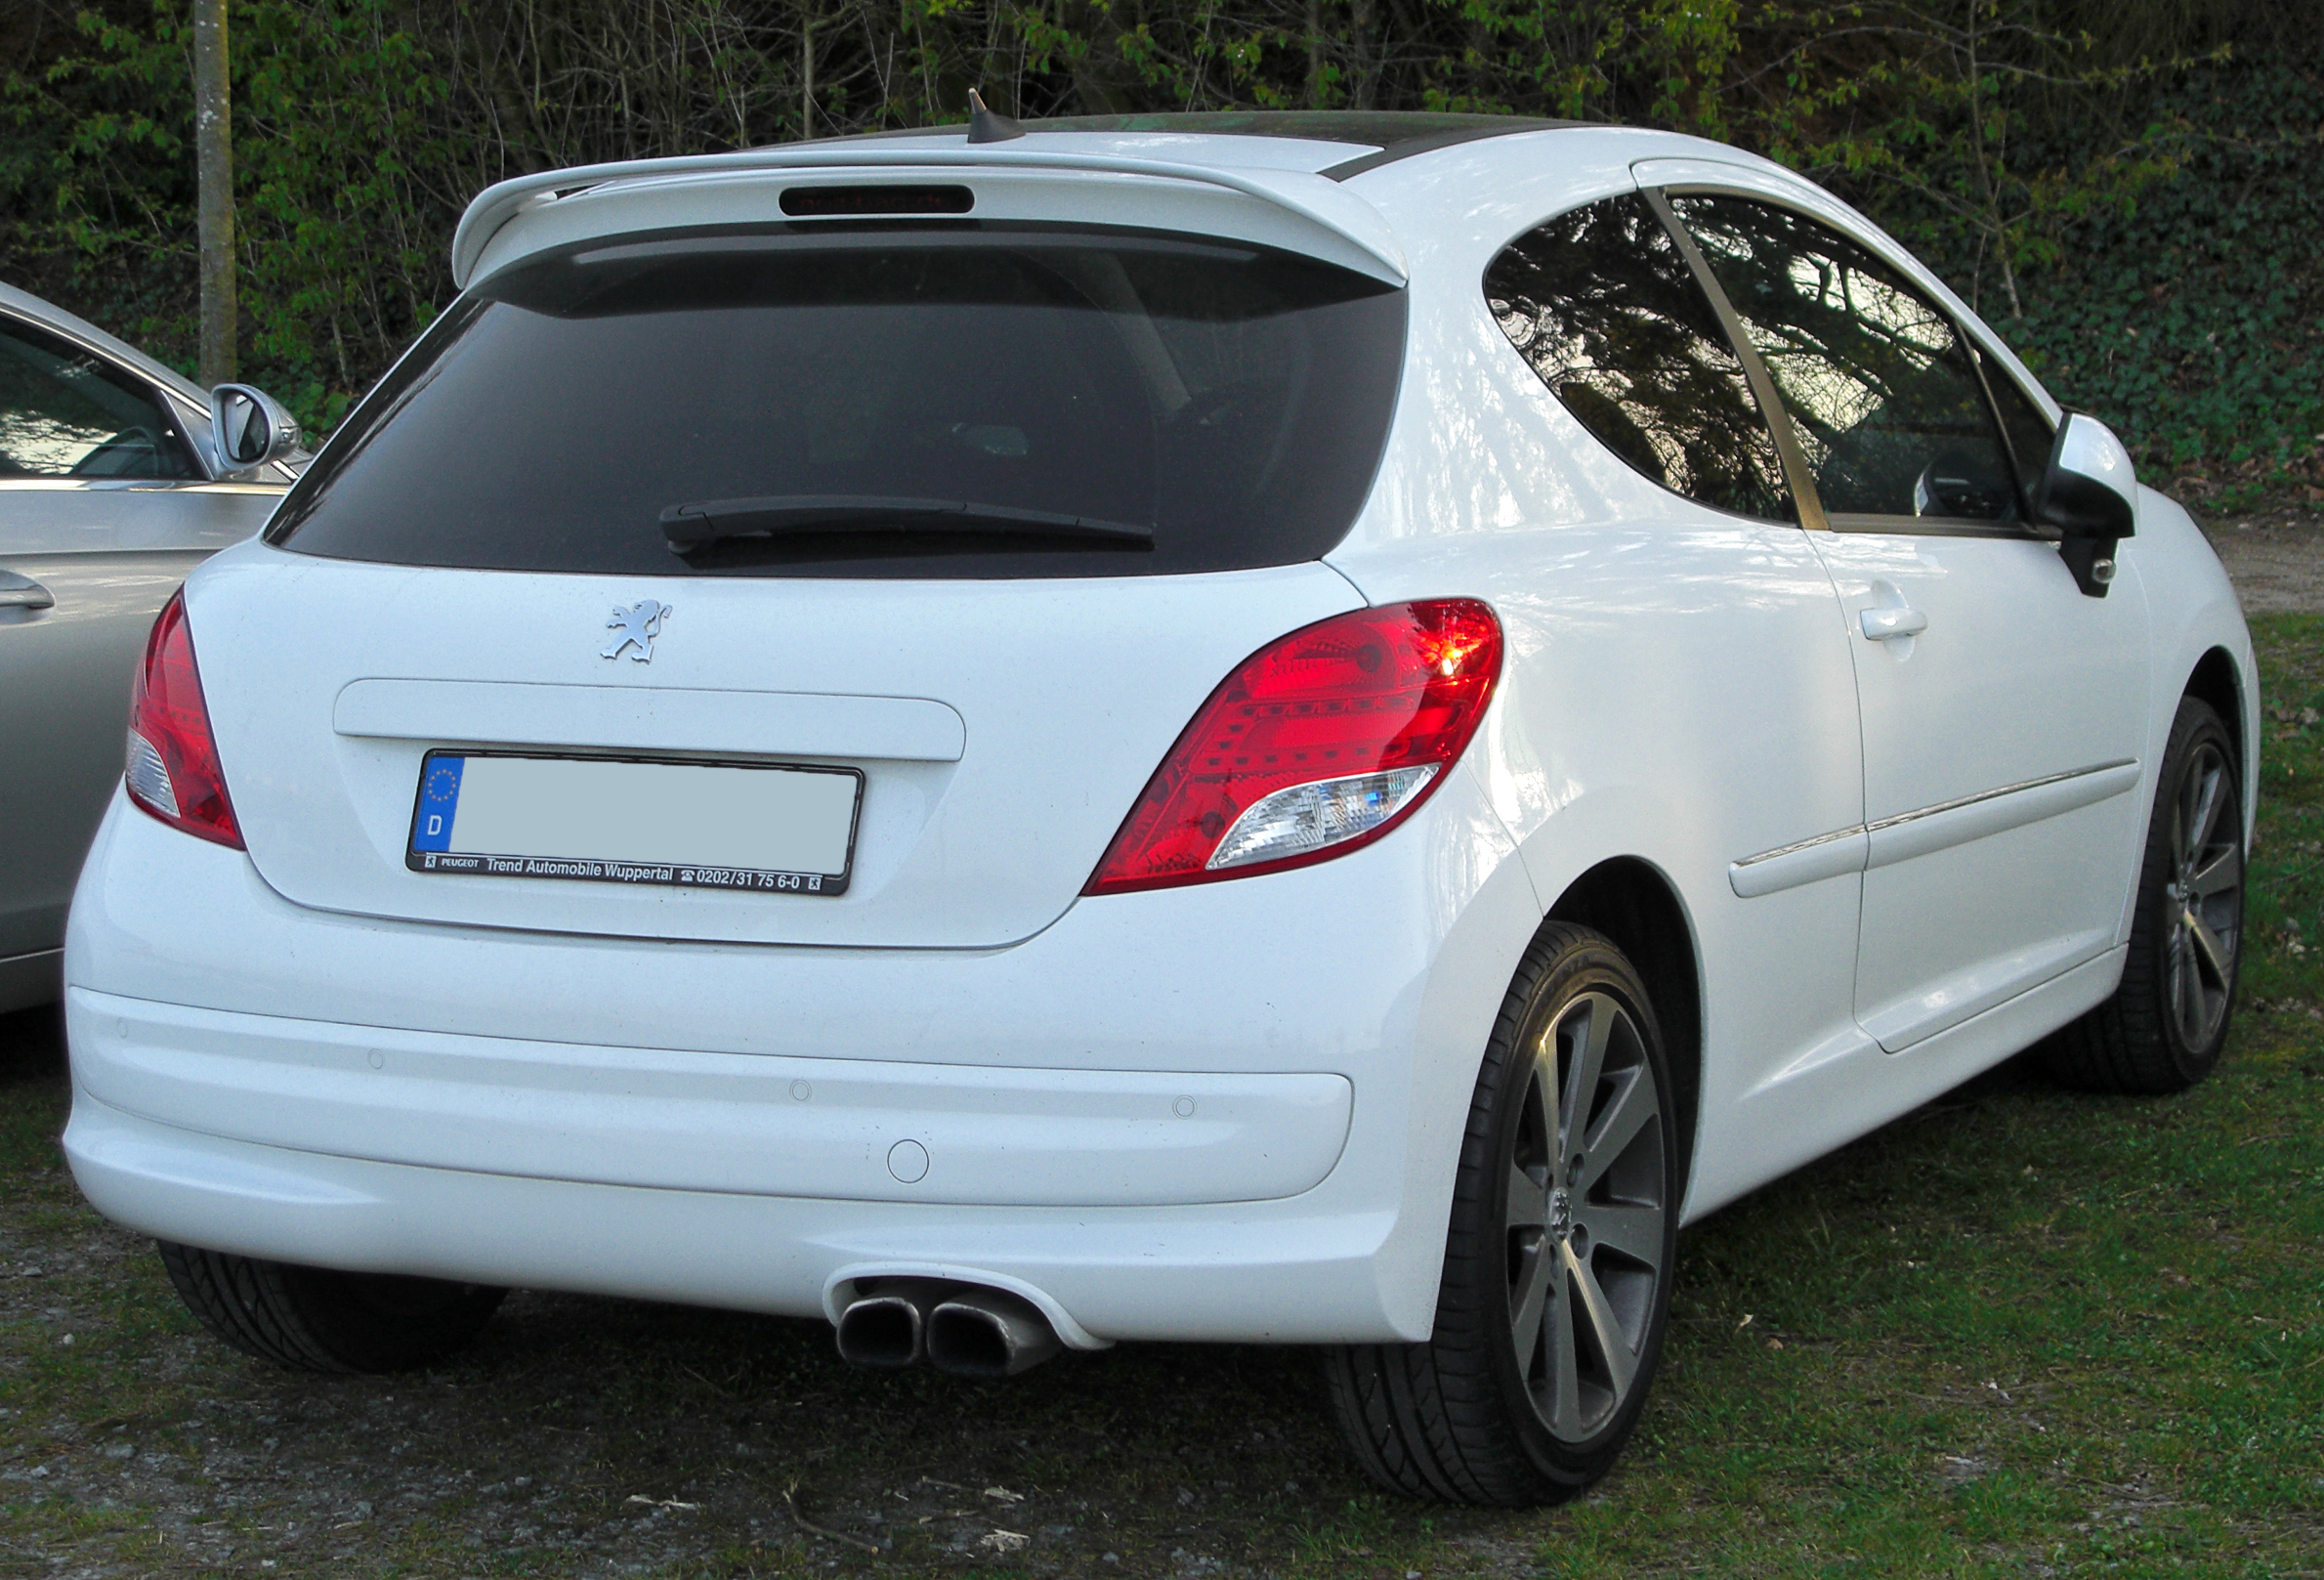 file peugeot 207 rc facelift rear wikimedia. Black Bedroom Furniture Sets. Home Design Ideas